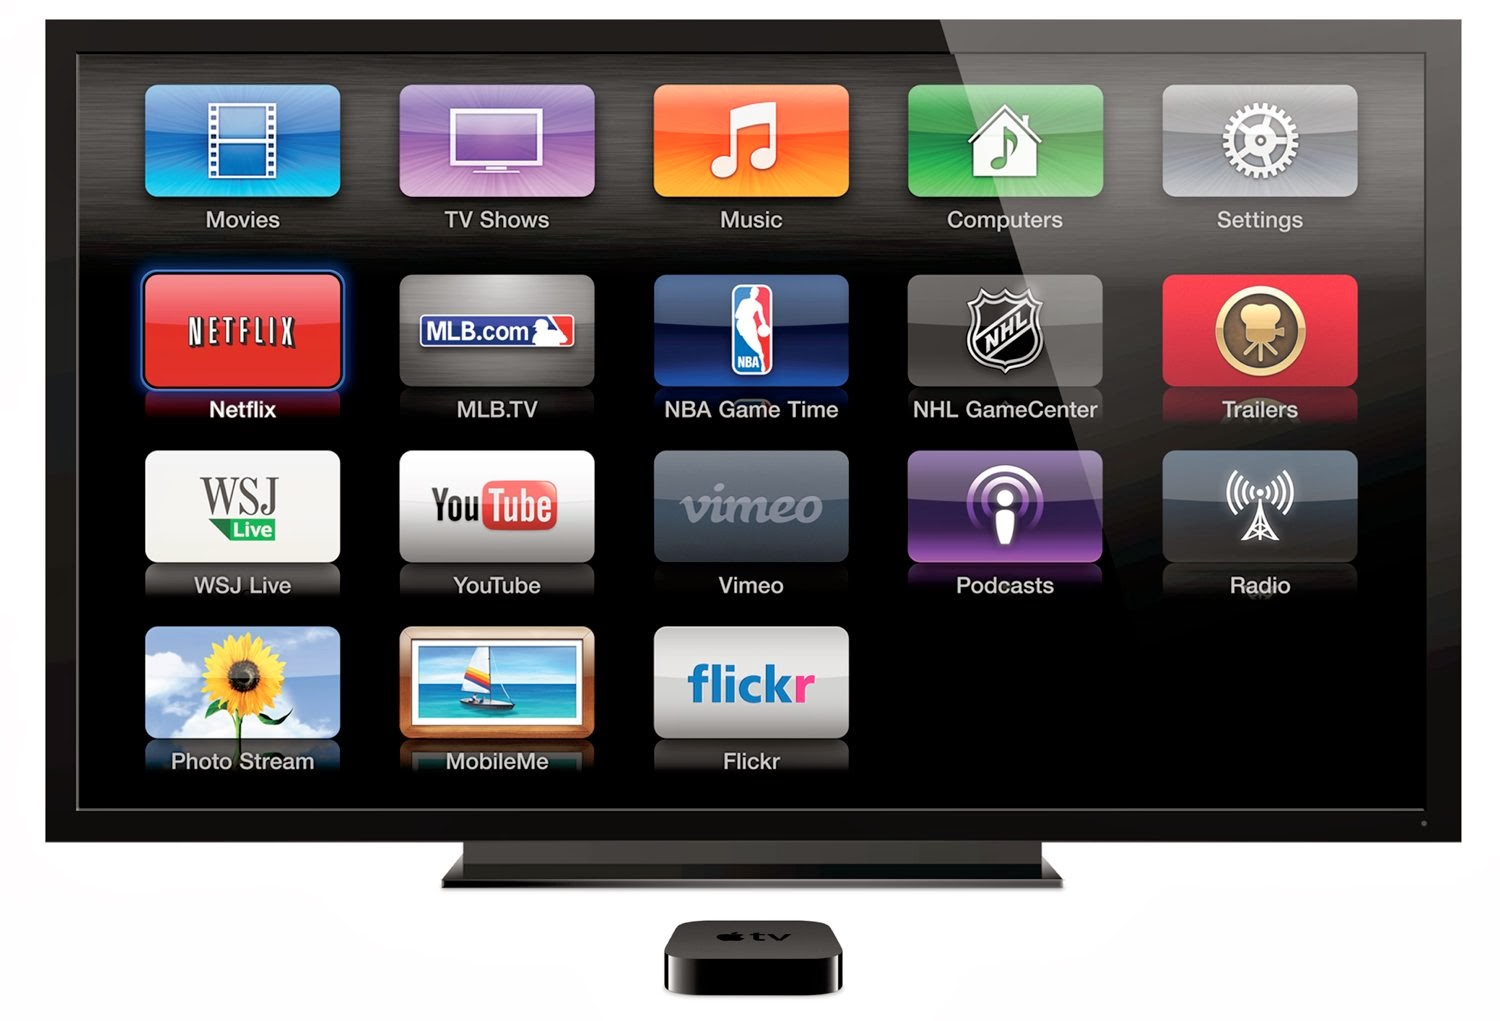 http://g-ecx.images-amazon.com/images/G/01/electronics/detail-page2/apple-appletv12-channels-lg.jpg